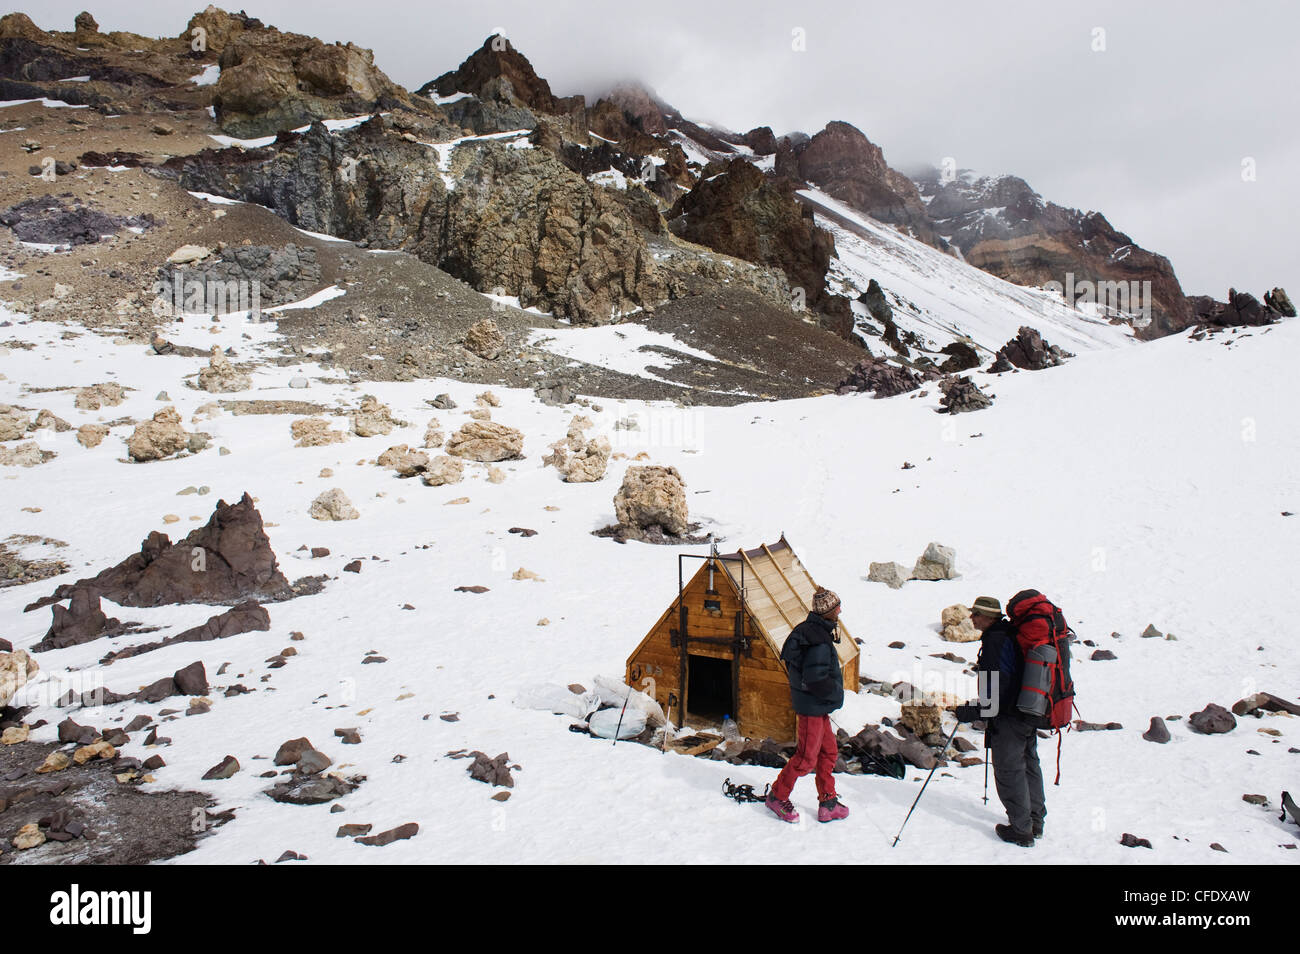 Climbers and hut at camp Berlin at 6000m, Aconcagua, Aconcagua Provincial Park, Andes mountains, Argentina - Stock Image